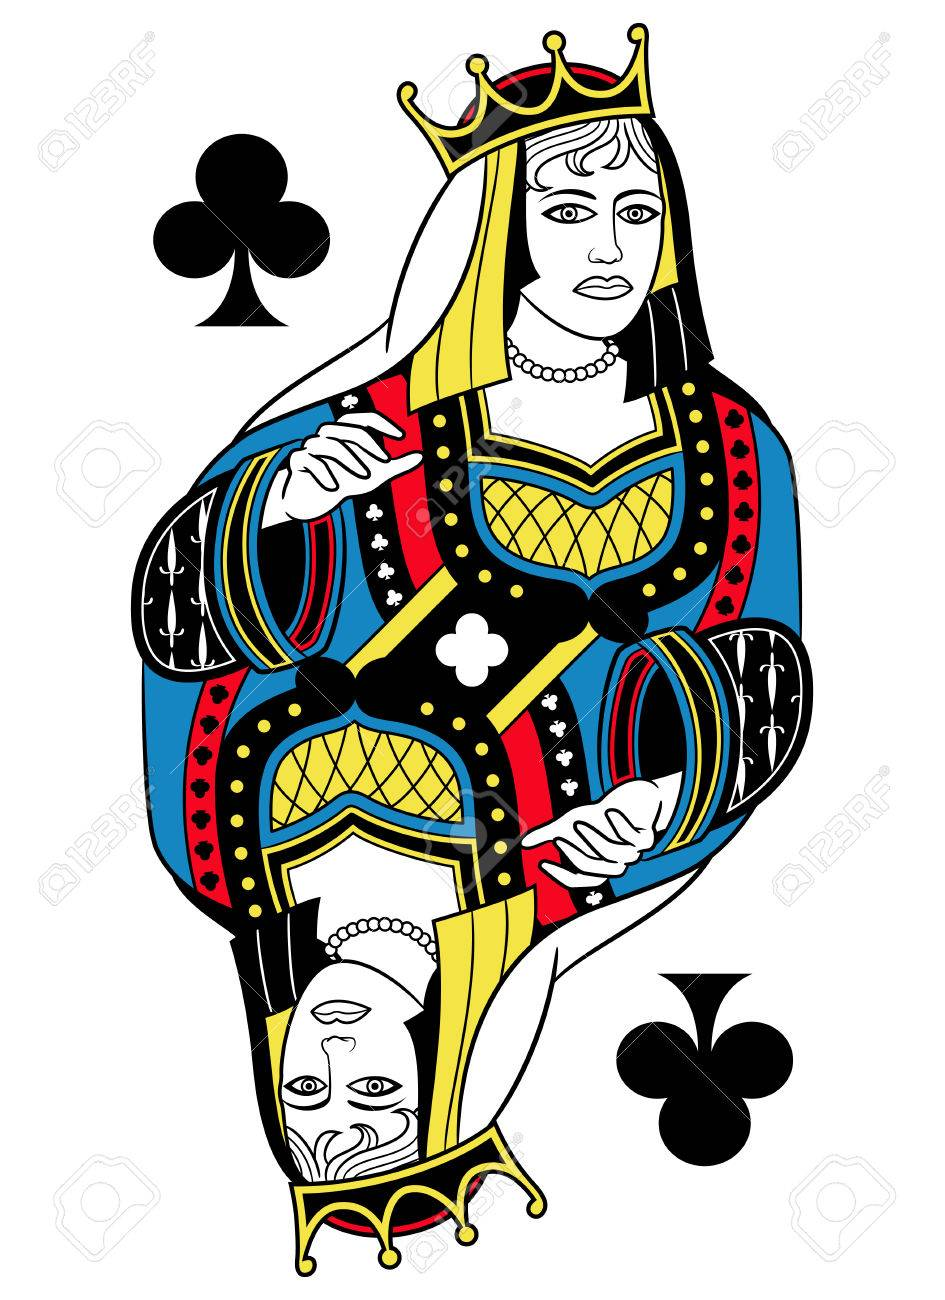 Queen Of Clubs Without Card Frame Design Inspired By French Tradition Stock Vector